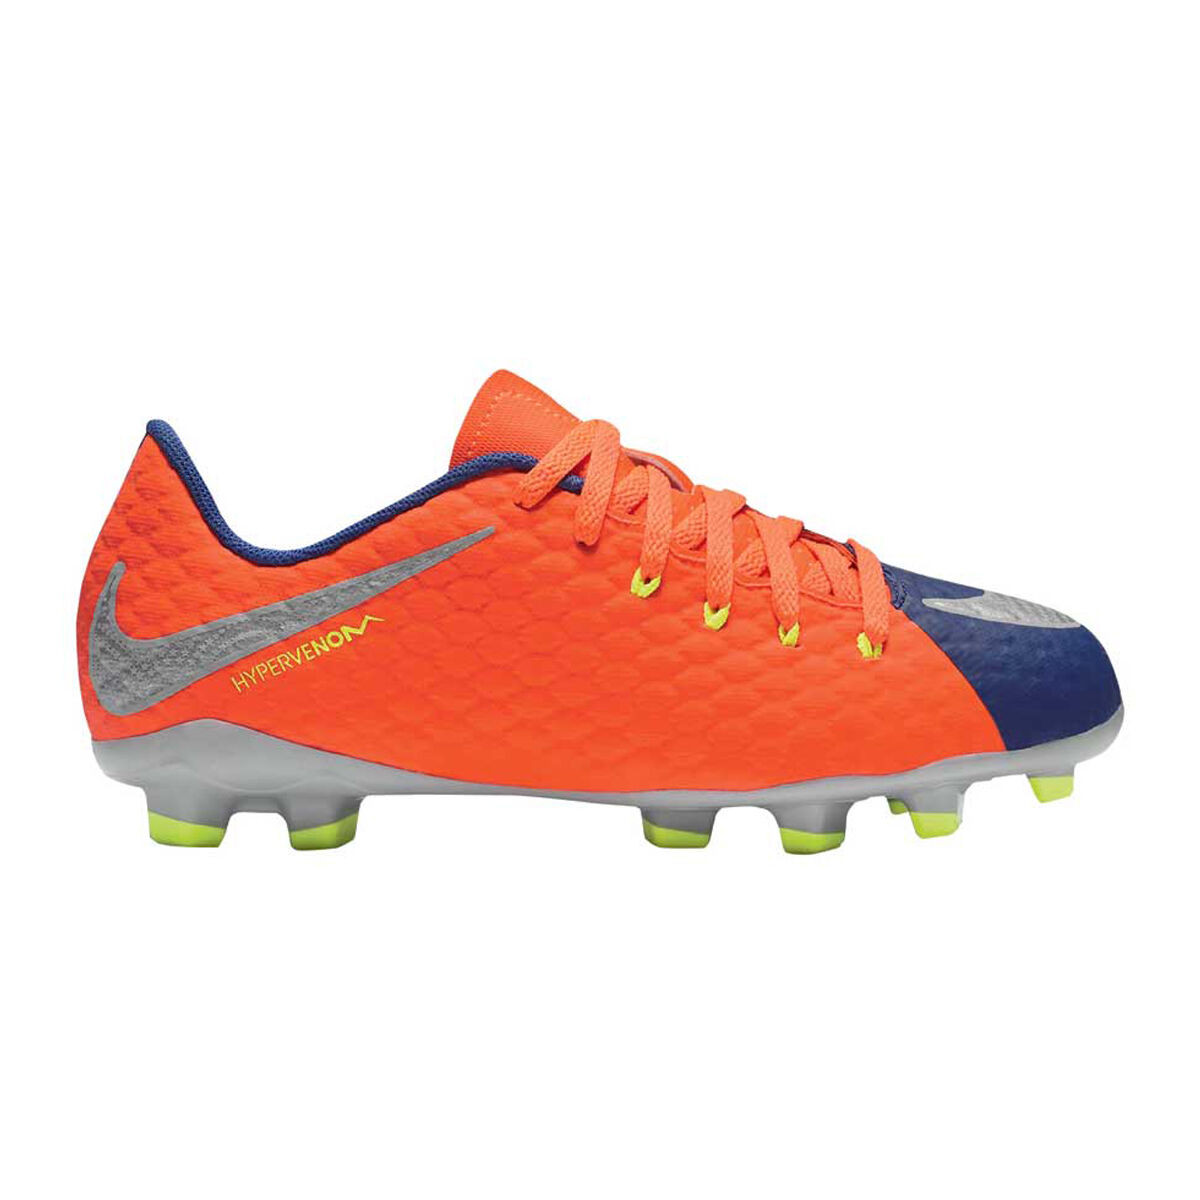 9660385f0 ... usa nike hypervenom phelon iii junior football boots blue orange us 4  junior blue 912a2 906d2